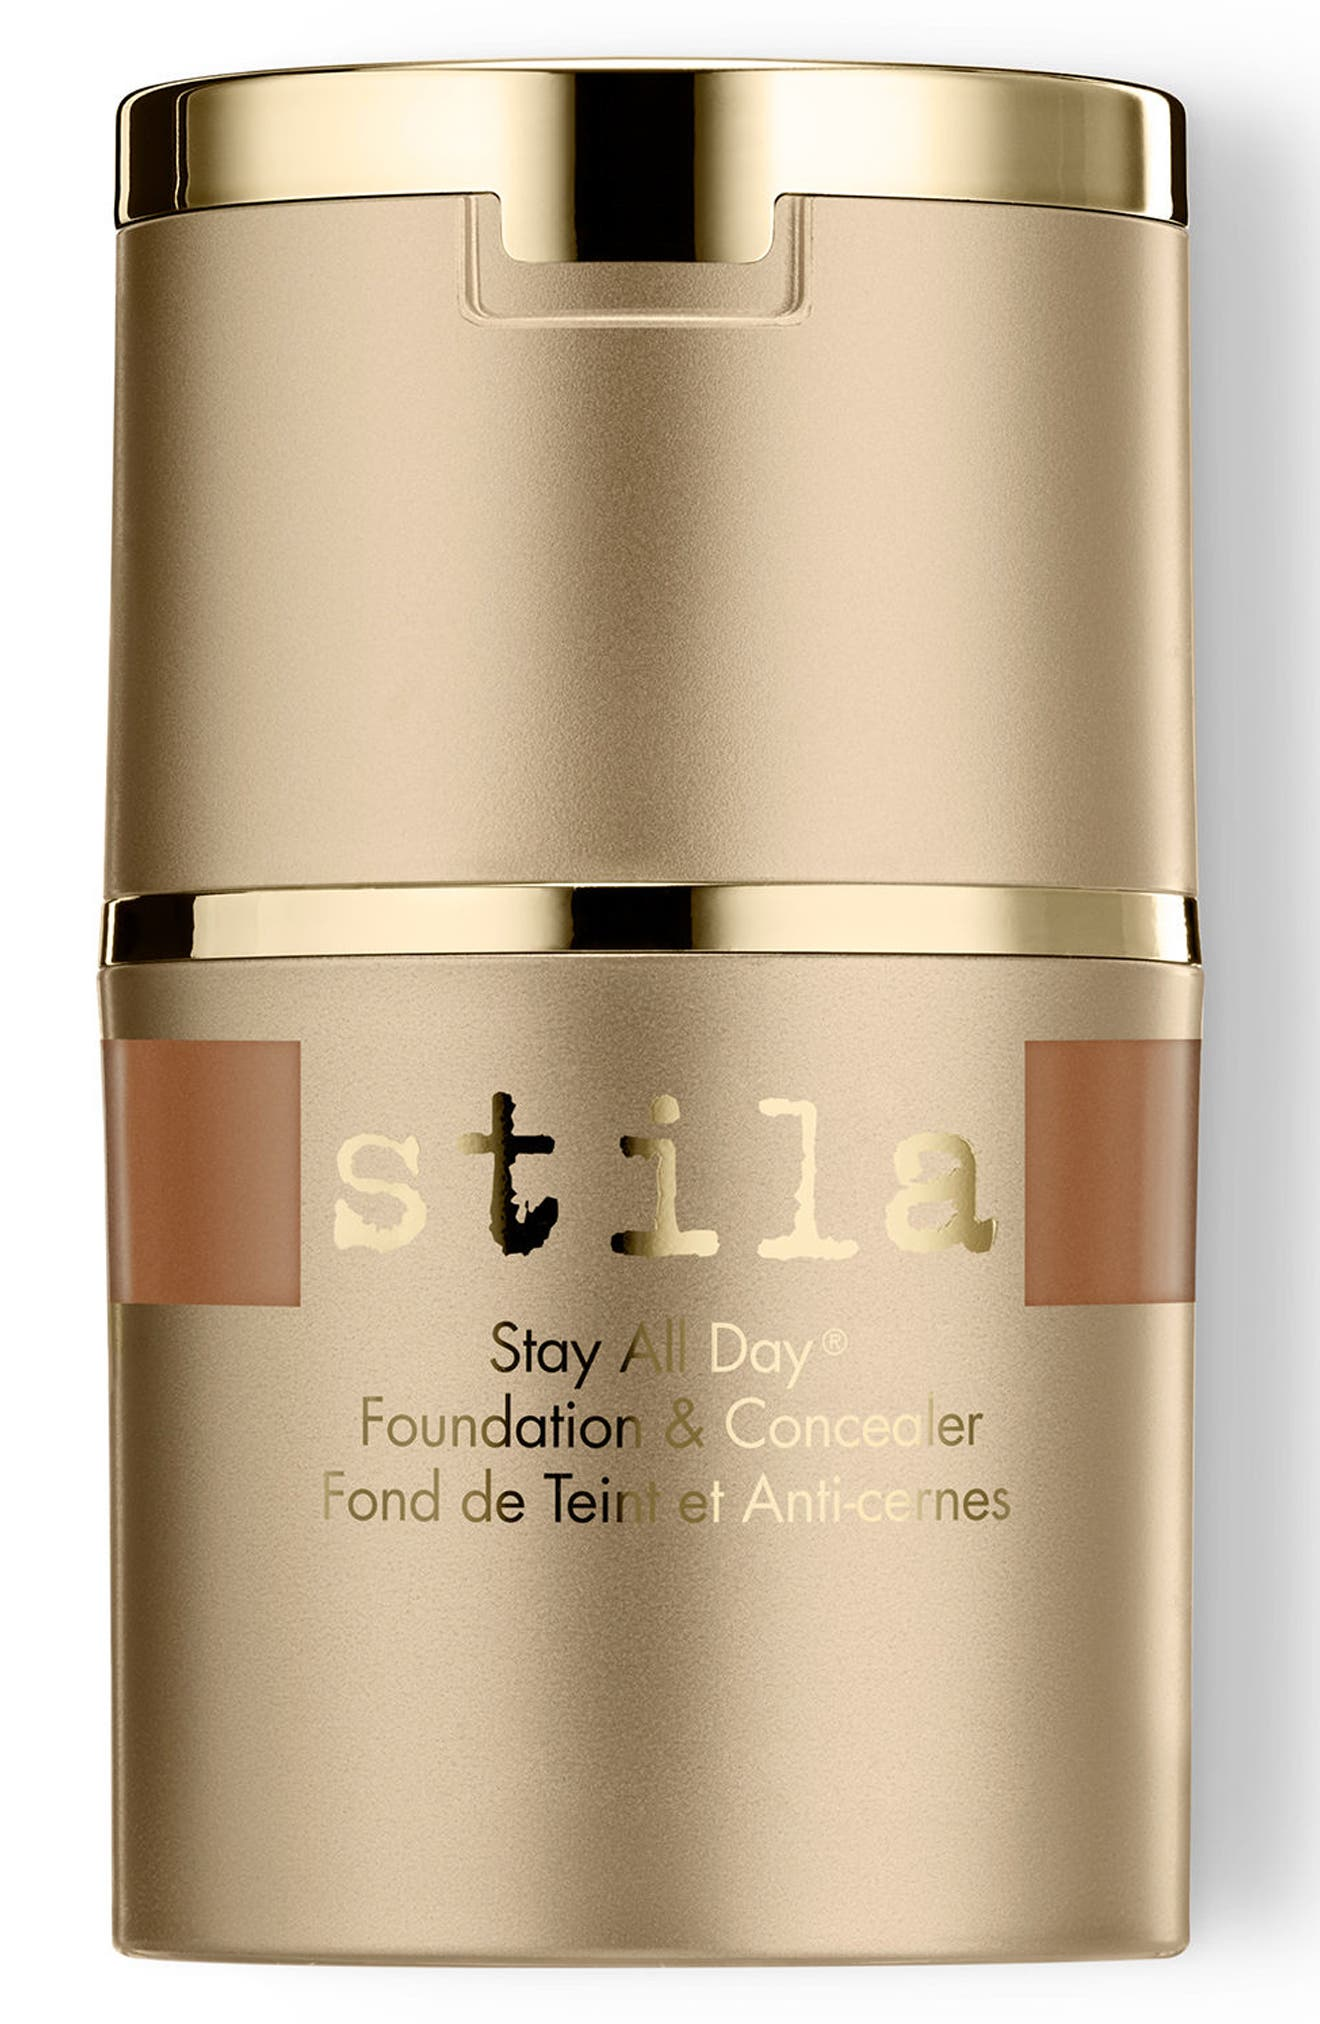 Stay All Day<sup>®</sup> Foundation & Concealer,                             Alternate thumbnail 2, color,                             STAY AD FOUND CONC TAN 13